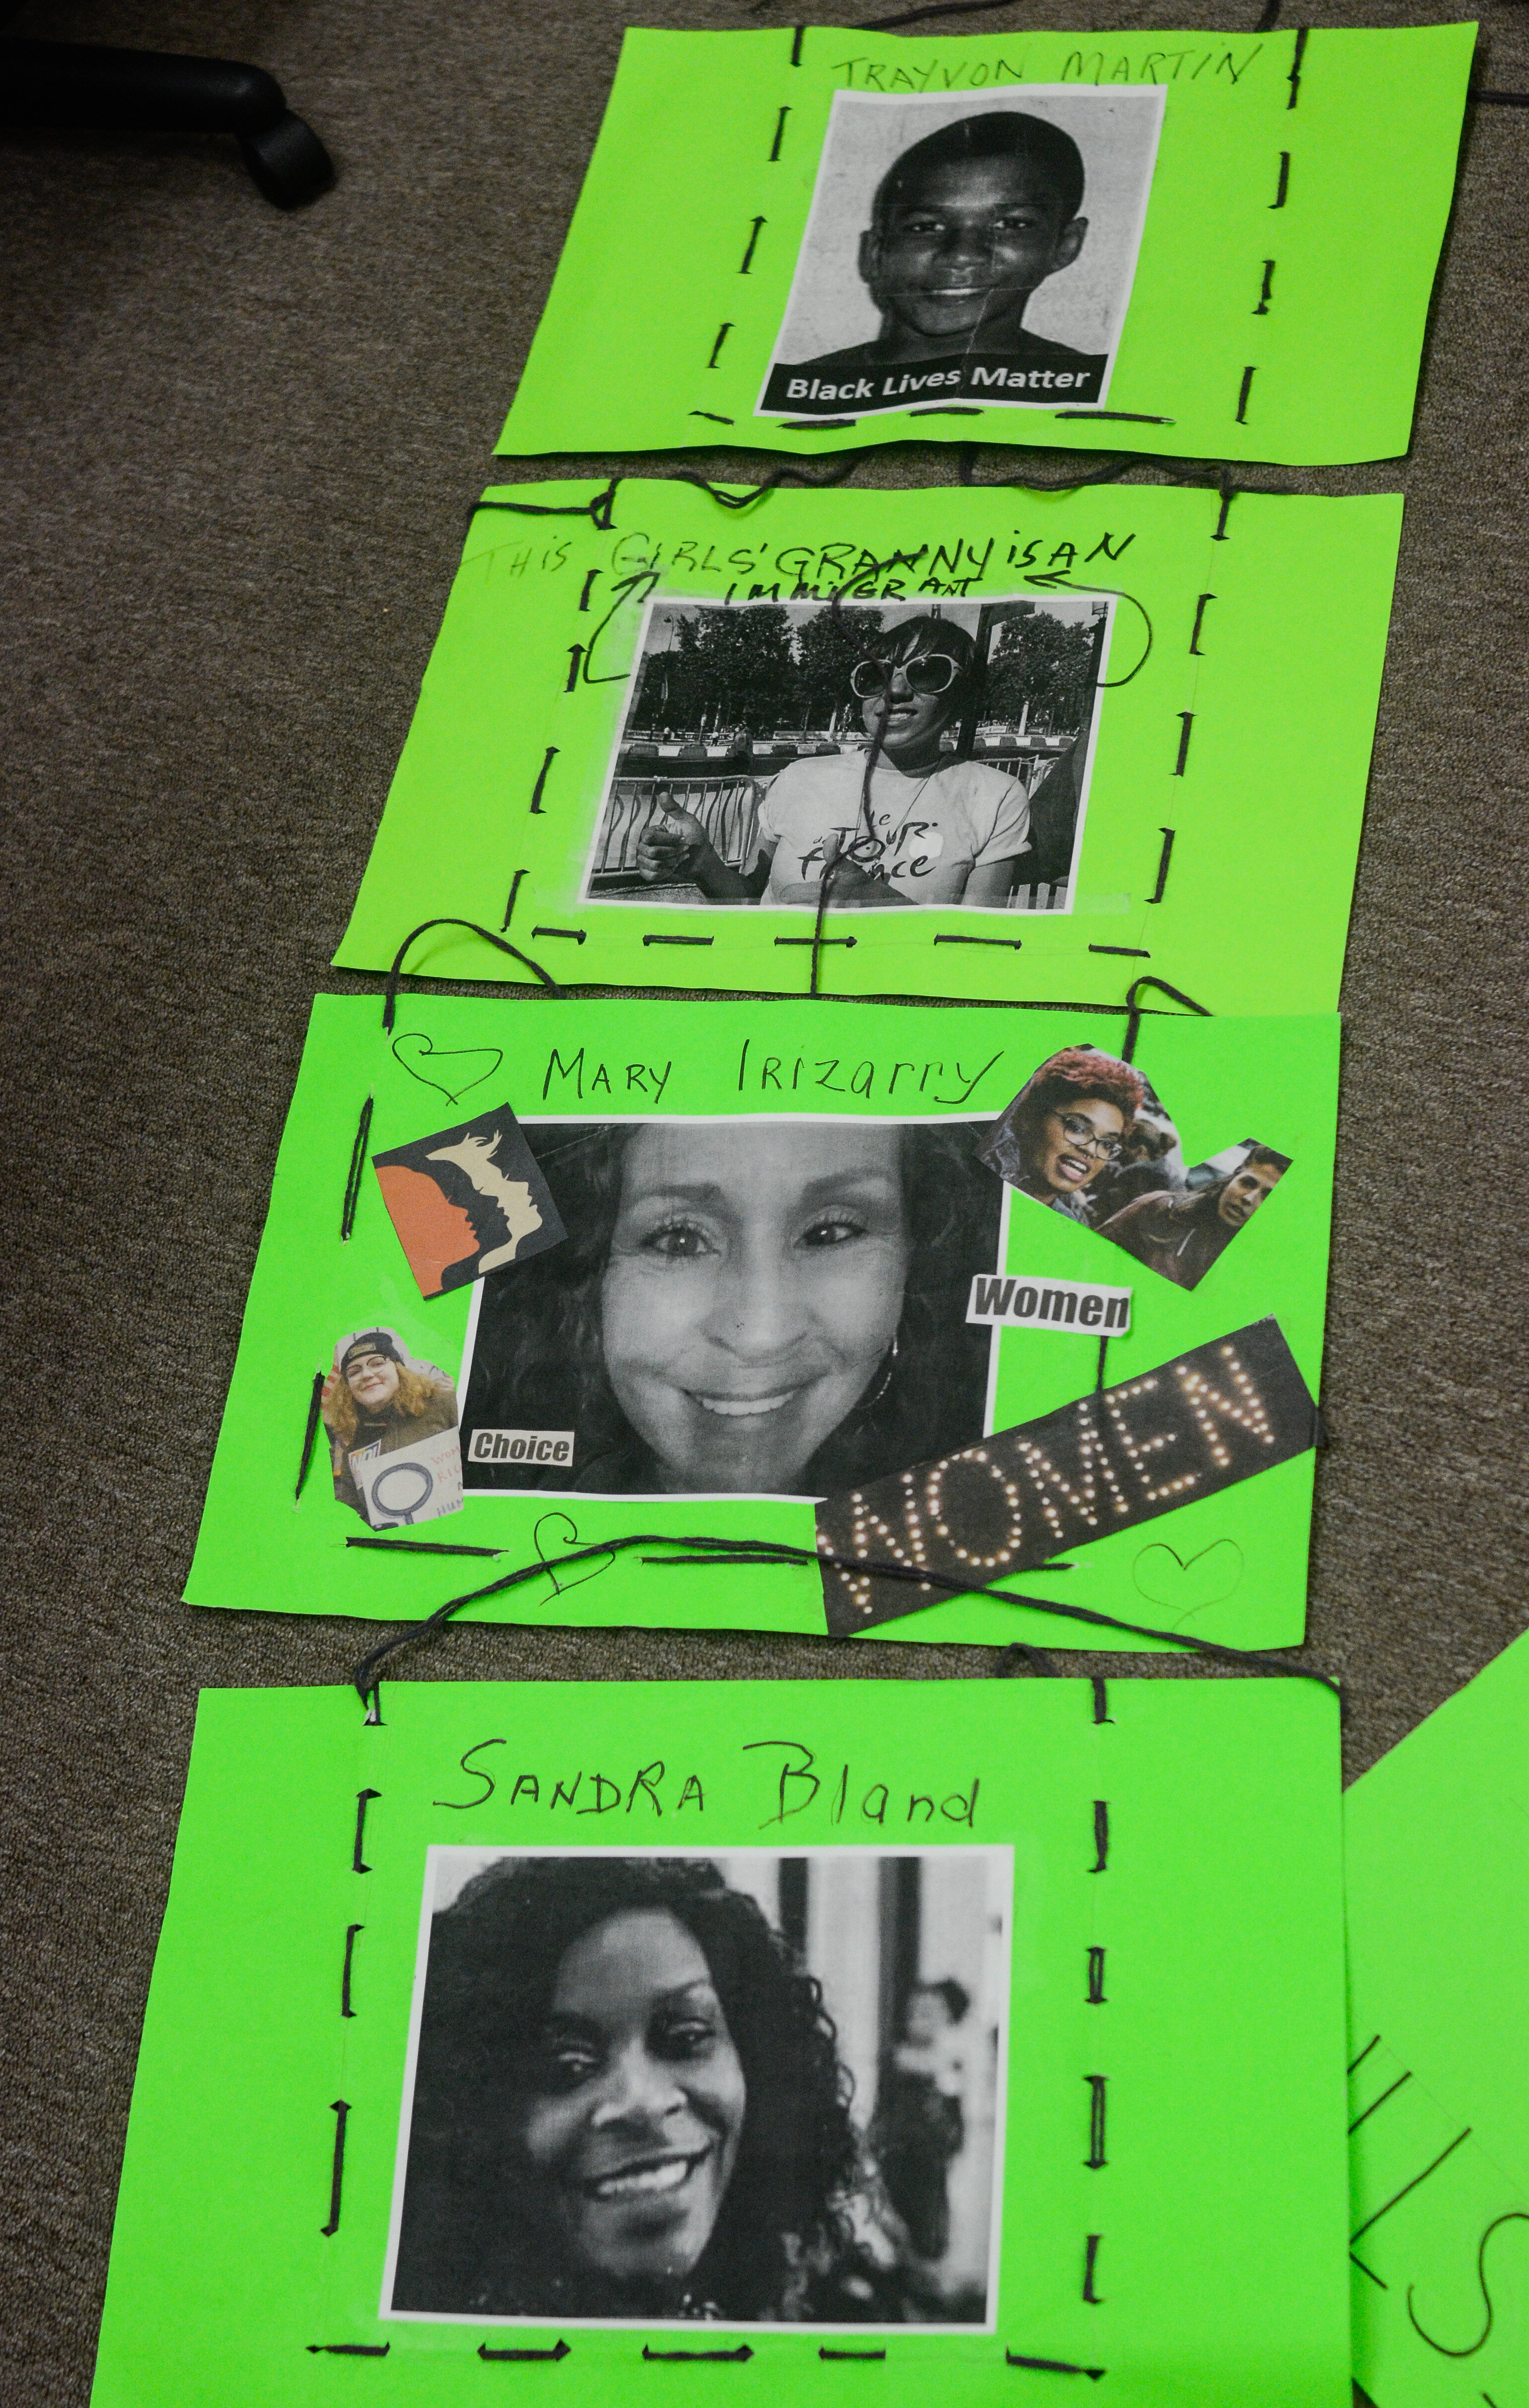 """Image: Four green poster boards are stitched together with black thread. It appears designed to be draped across the front and back of the body. Photos are accompanied with text on each sign. From top to bottom, the text reads """"Trayvon Martin,"""" """"This Girls' Granny is an Immigrant,"""" """"Mary Irizarry,"""" along with """"Women"""" and """"Choice,"""" and lastly """"Sandra Bland."""" Image by William Camargo."""